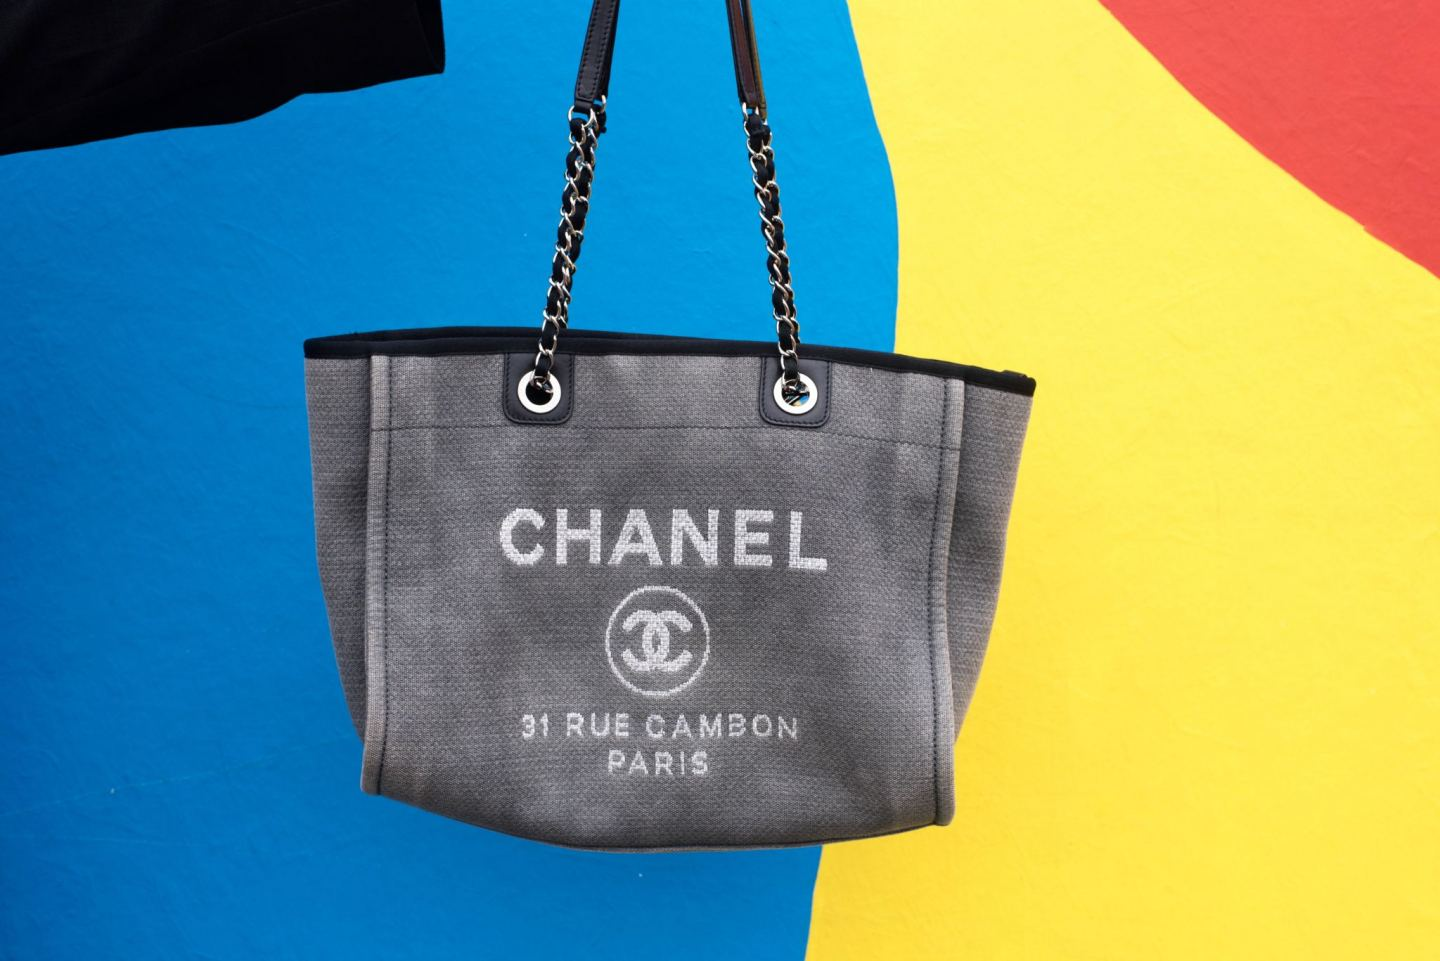 Chanel Deauville Tote Bag detail grey canvas tote bag handbag